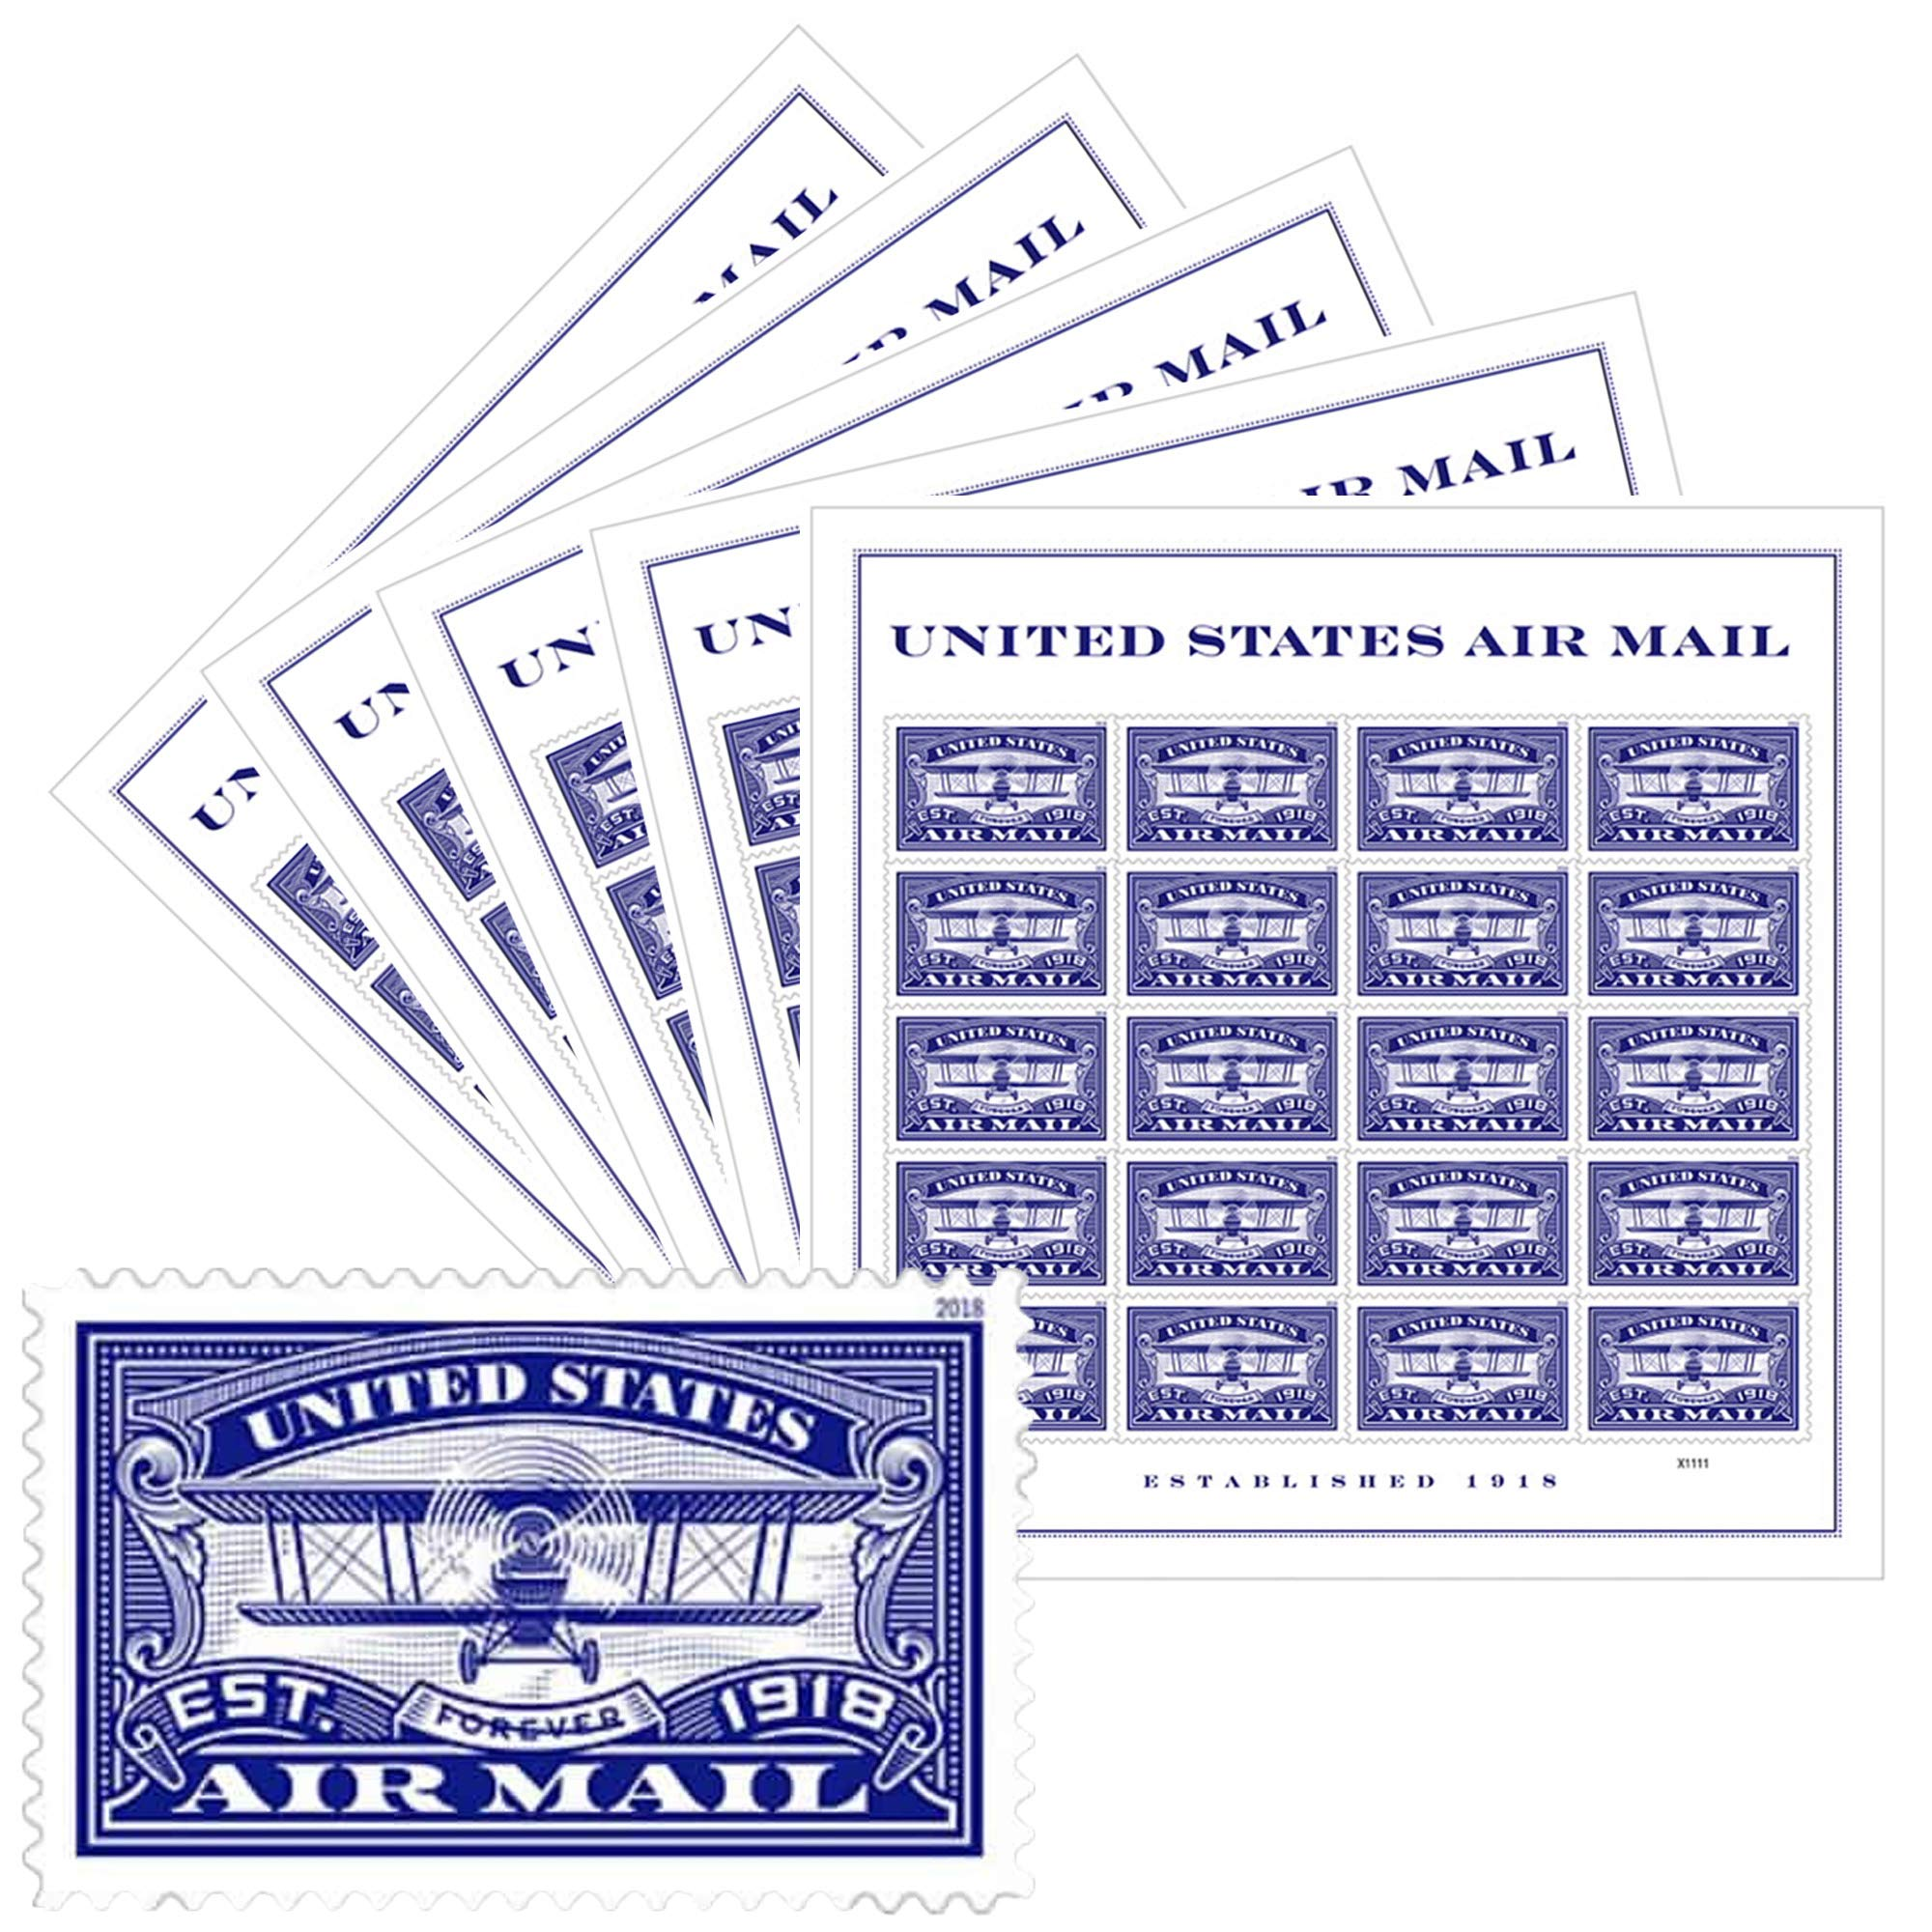 USPS Forever First Class Stamp: Air Mail Blue, 5 Sheets (100 Stamps) Wedding Celebration by USPS (Image #1)